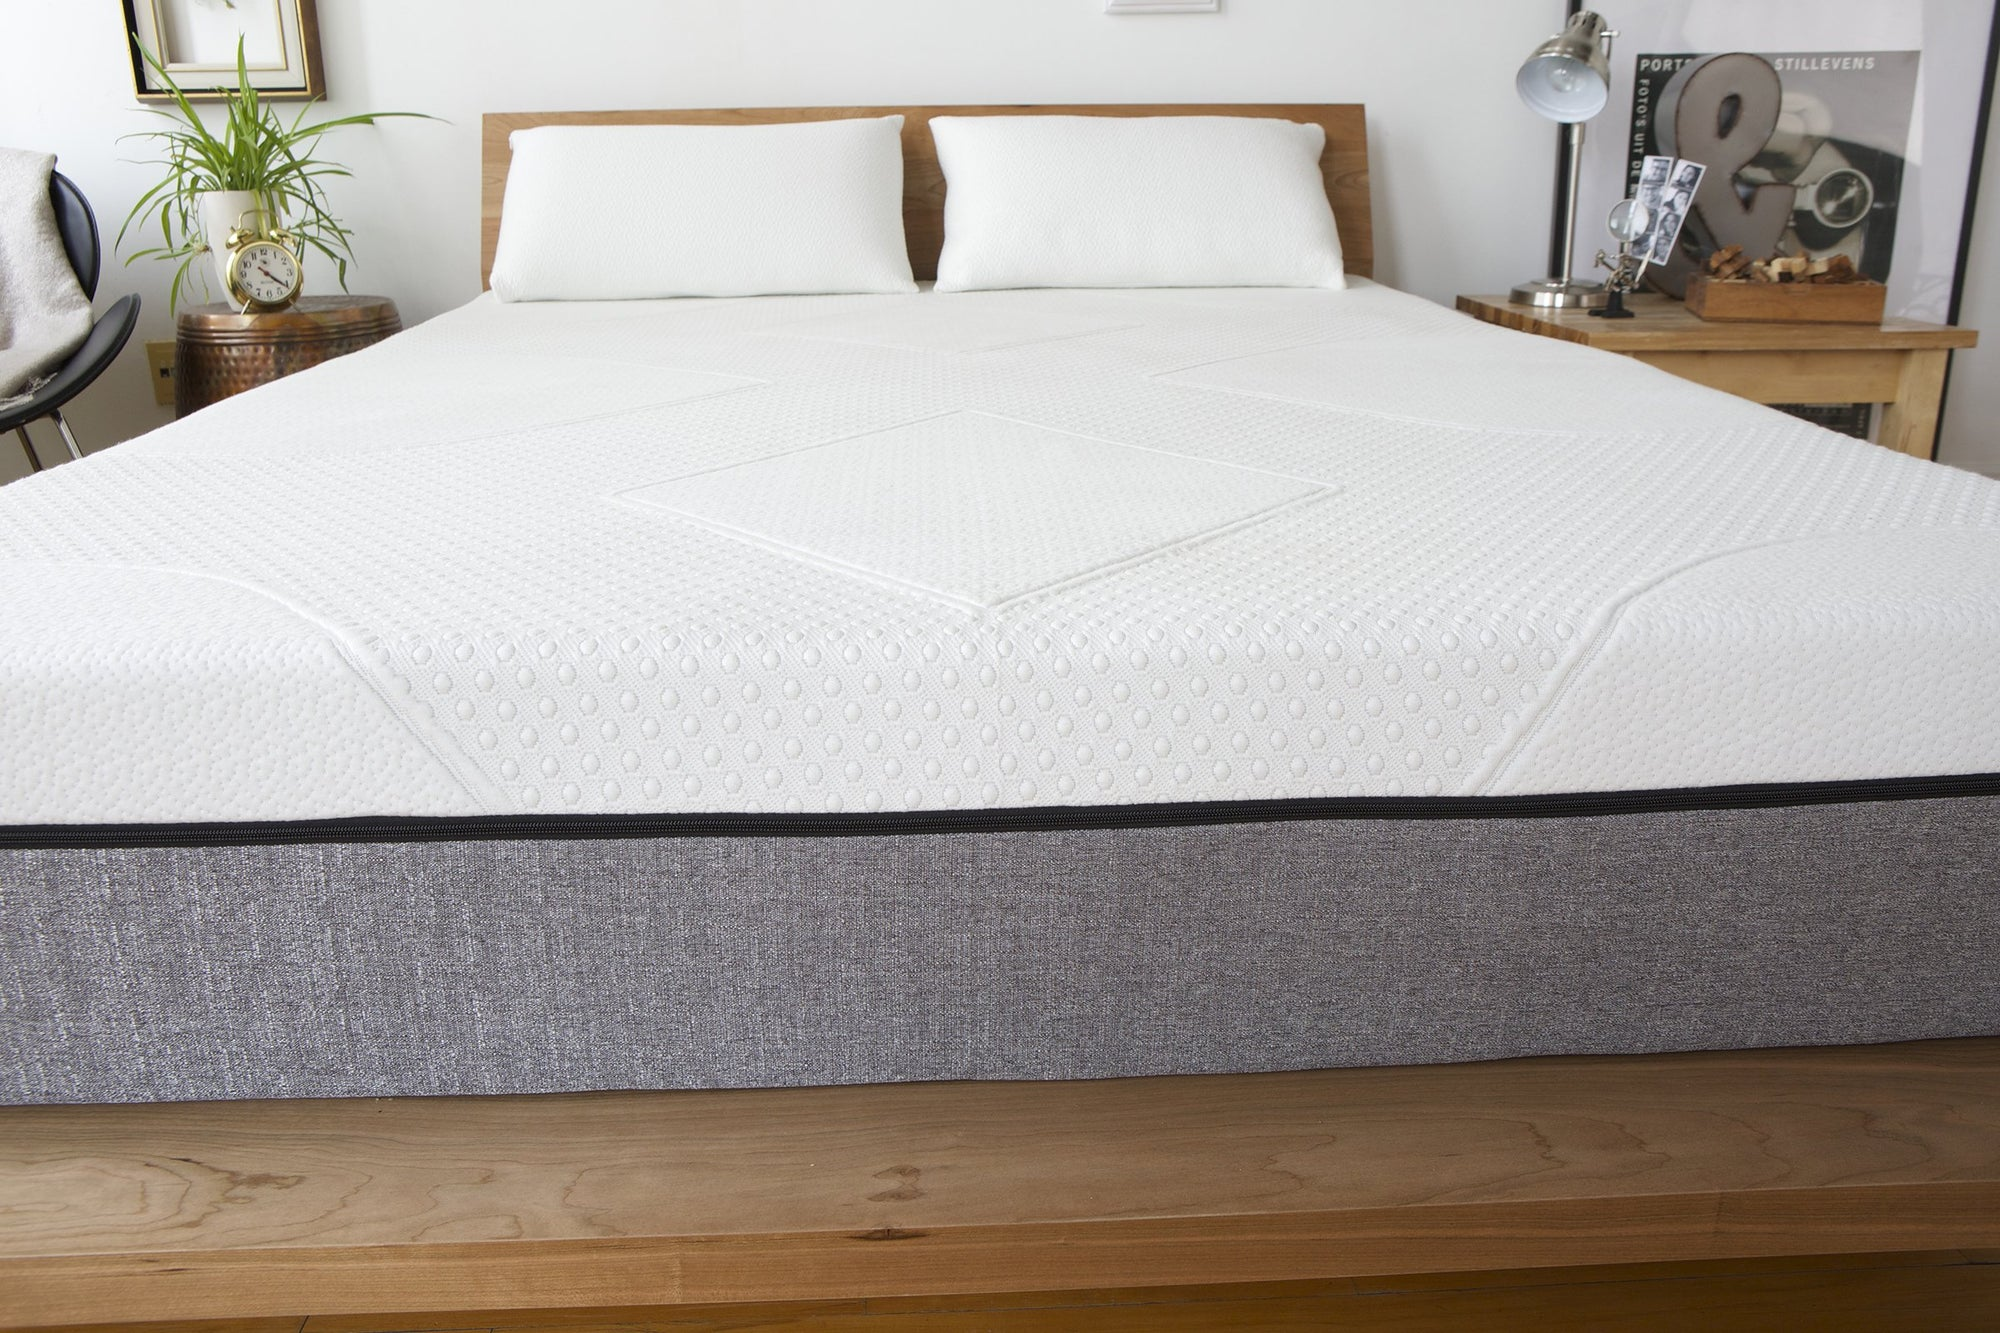 How to Choose the Best Bed Size for You